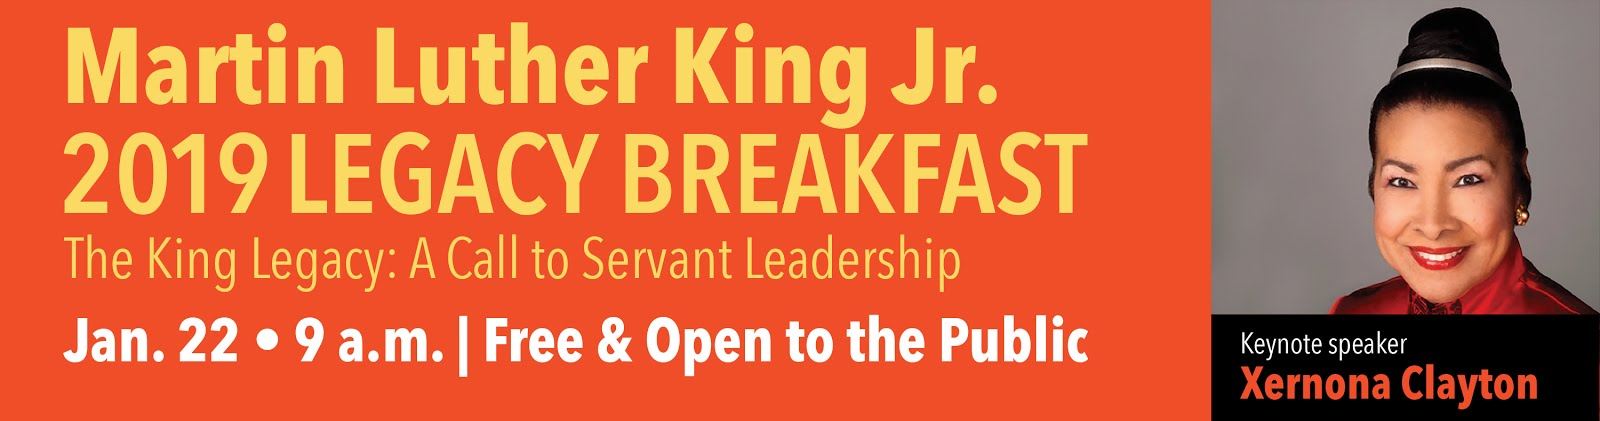 Martin Luther King Jr. 2019 Legacy Breakfast